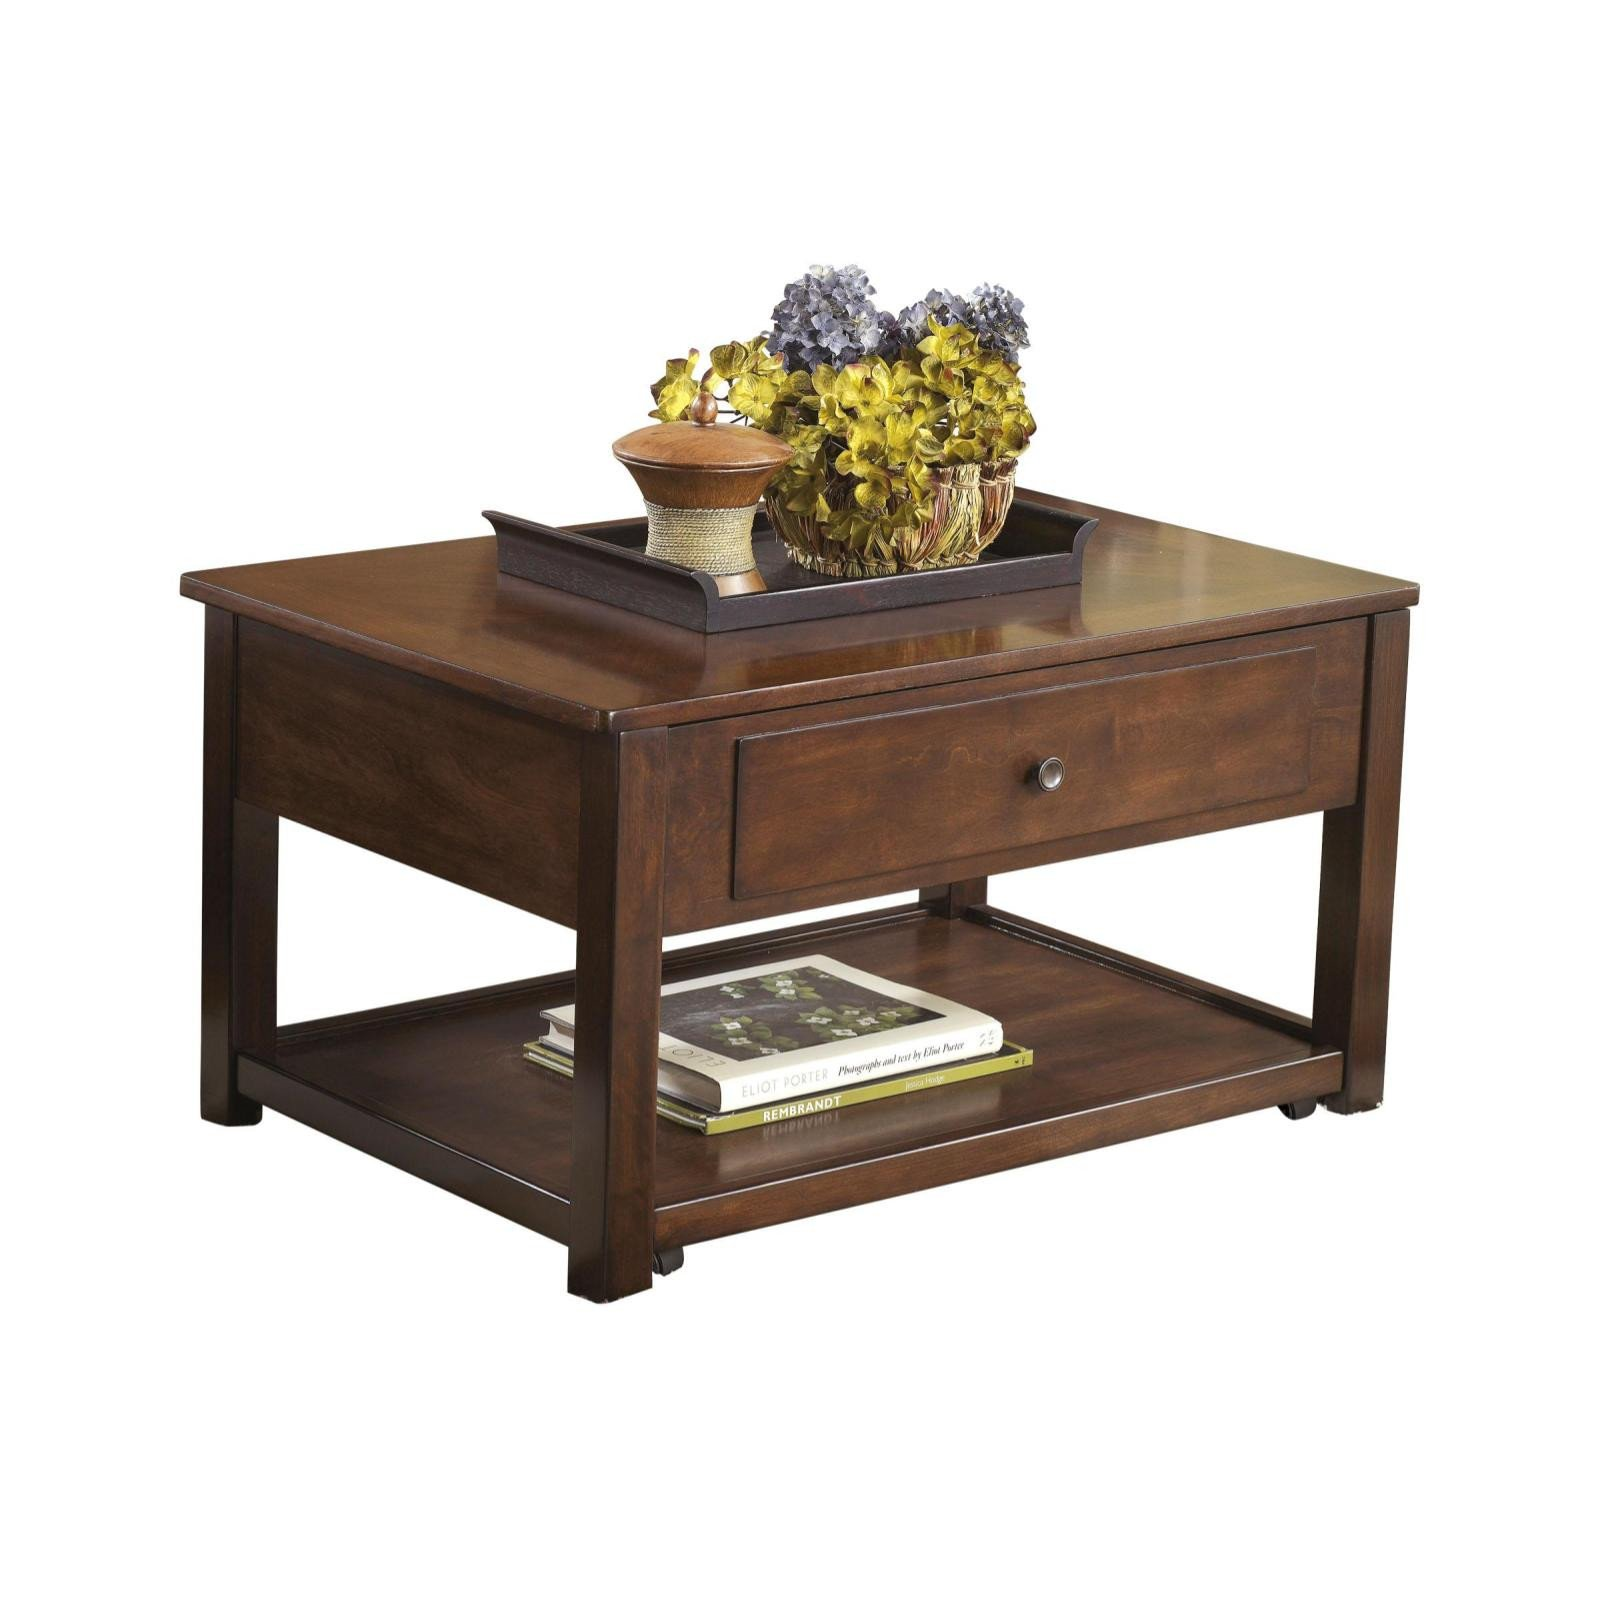 marion lift top coffee table adams furniture web end ashley occasional tables how good broyhill skinny bedside inch nightstand extra large styling square italian pulaski dining